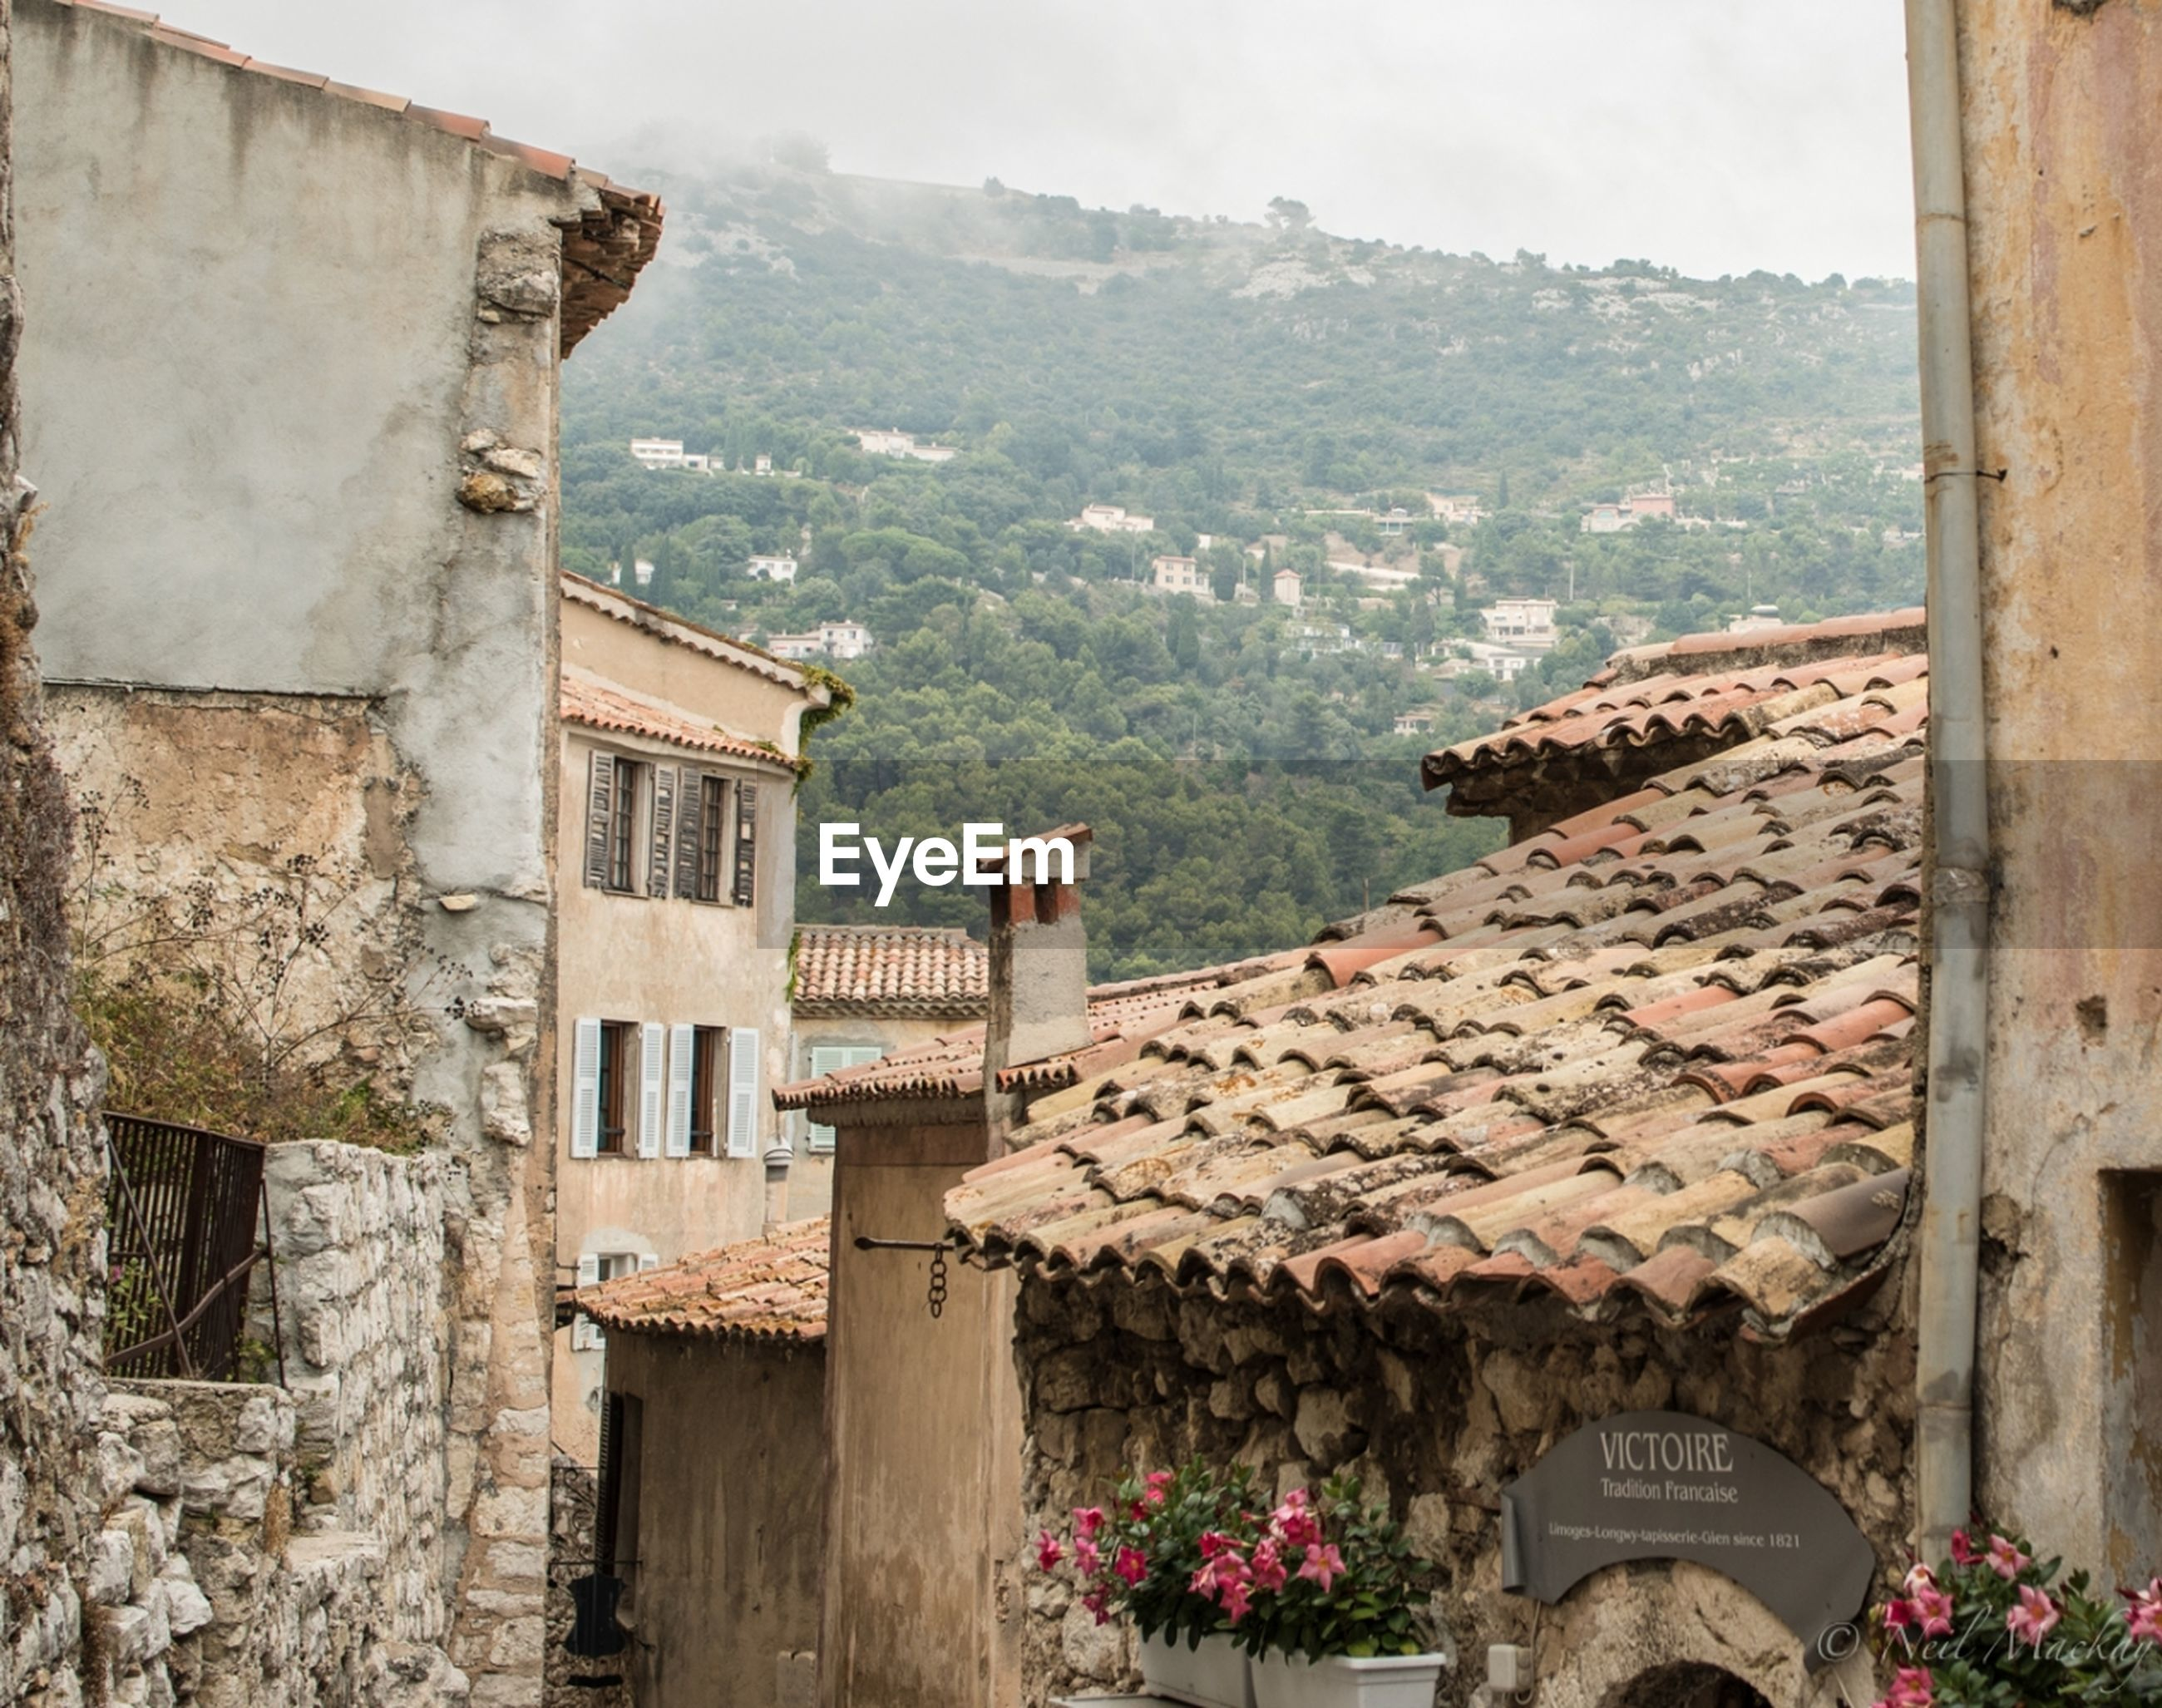 architecture, built structure, window, building exterior, residential building, mountain, town, sea, water, nature, beauty in nature, scenics, outdoors, exterior, rocky mountains, green color, residential district, stone material, history, santorini, tranquil scene, stone